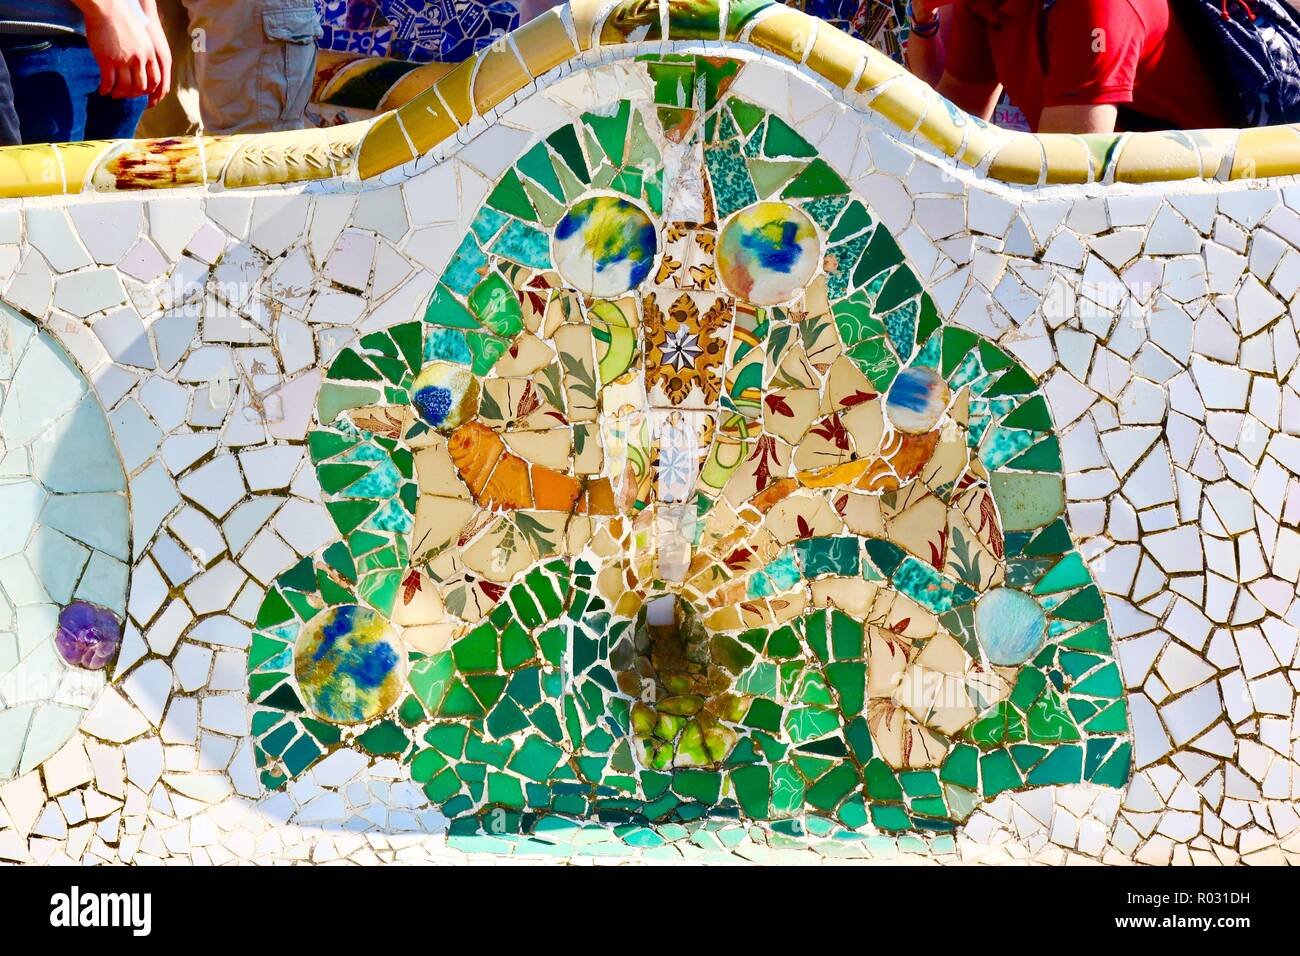 Barcelona, Spain, October 2018. Gaudi's mosaic art on a bench at Park Guell. - Stock Image